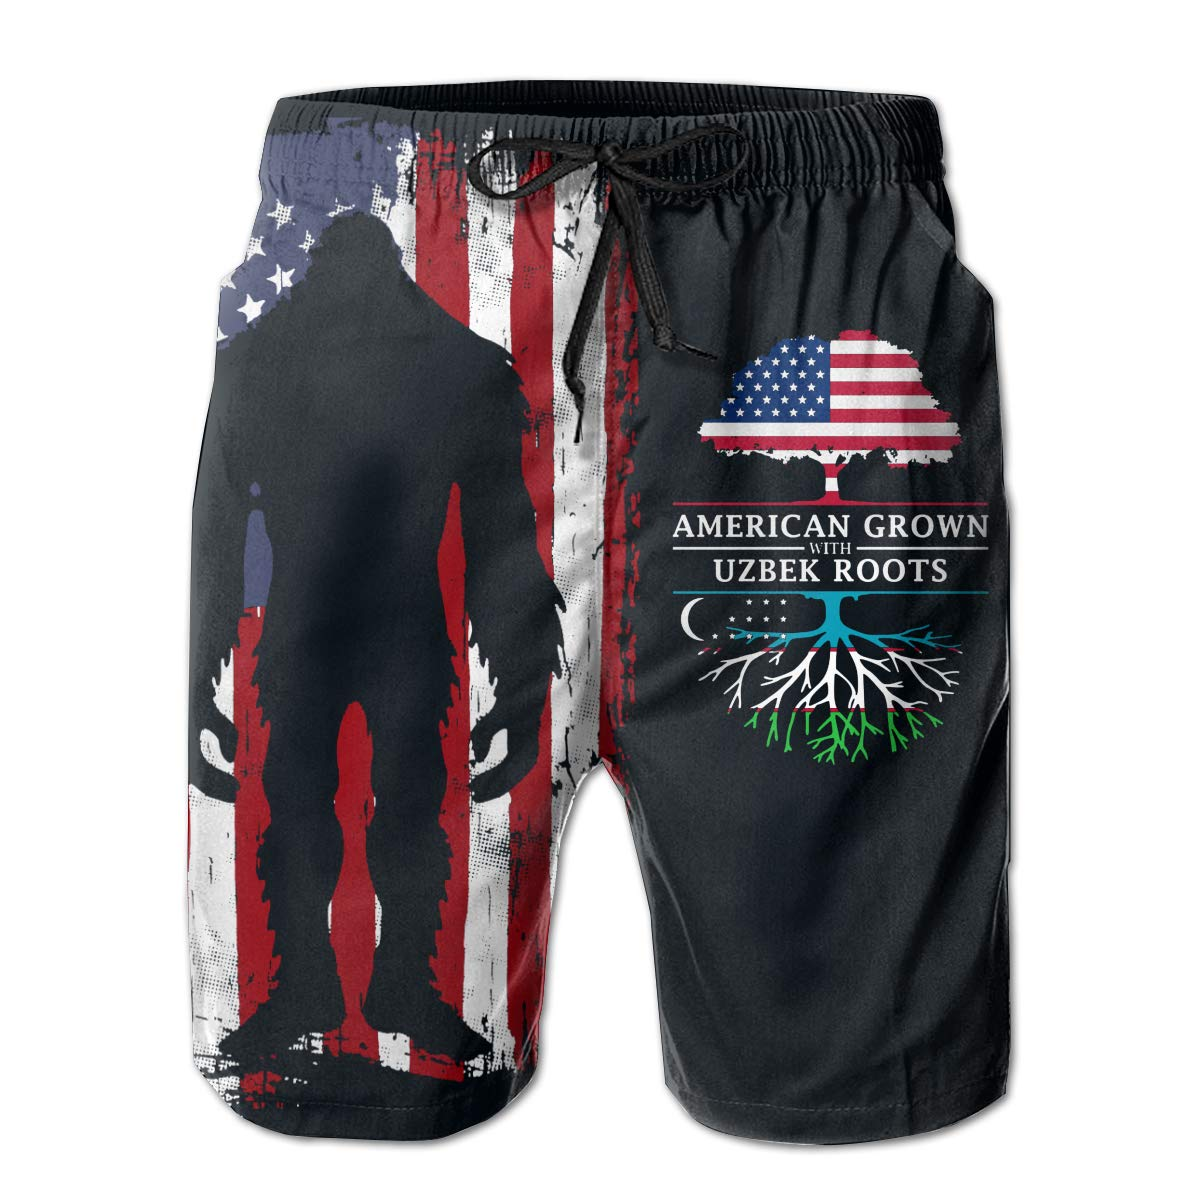 Dtgfdt1 American Grown with Uzbek Roots Mens Quick Dry Mesh Lining Beach Board Shorts with Pockets